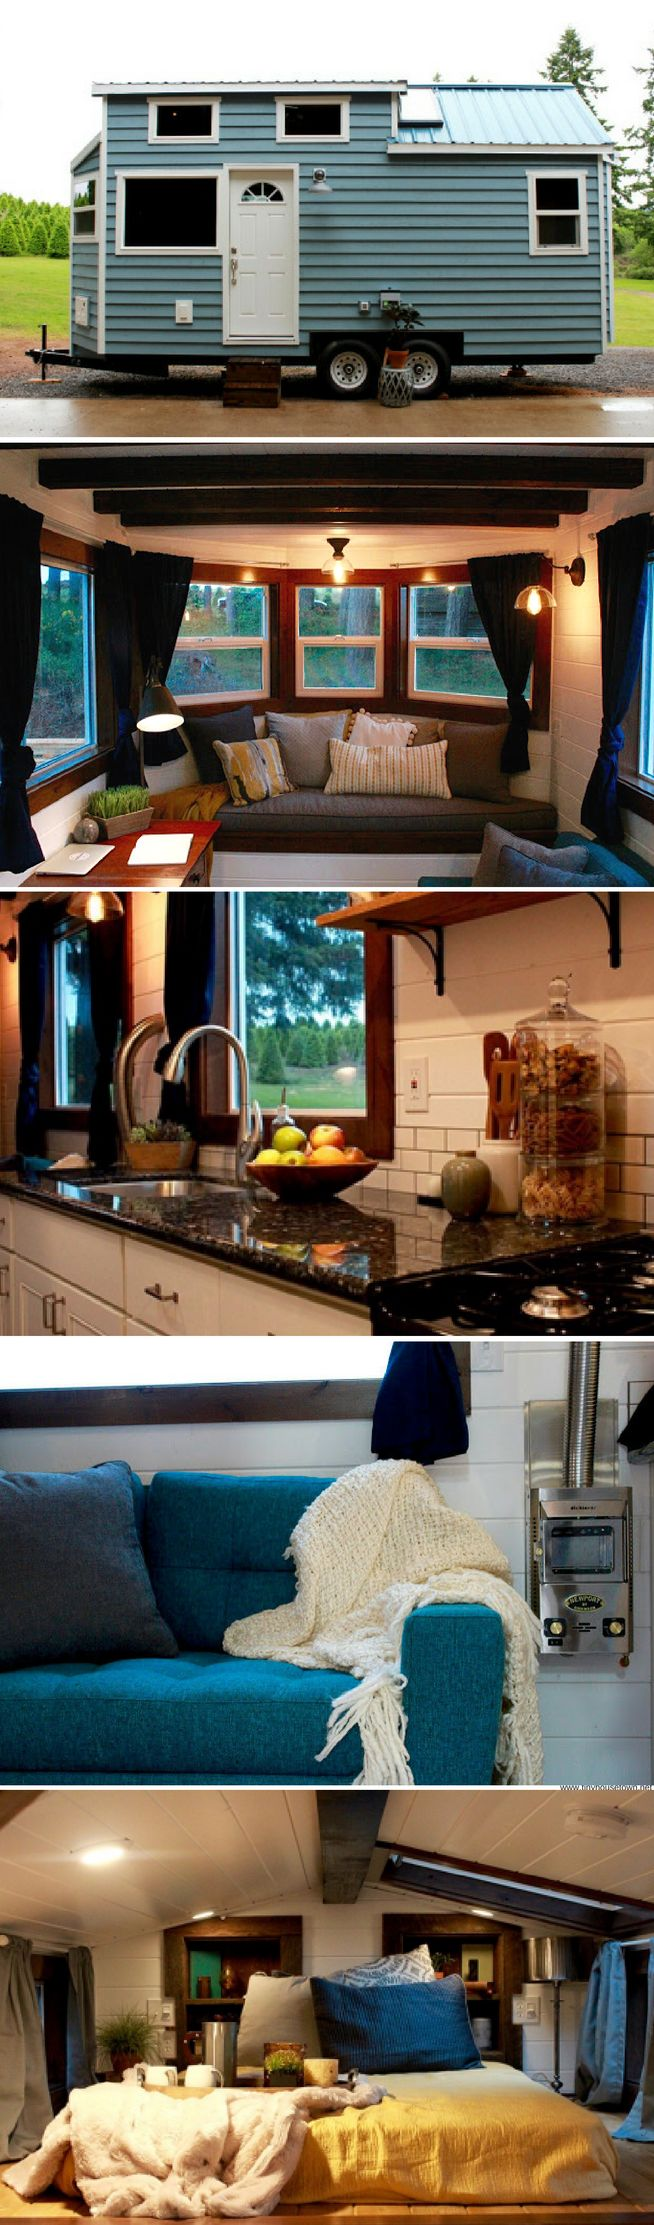 Outstanding 17 Best Ideas About Tiny House Interiors On Pinterest Tiny House Largest Home Design Picture Inspirations Pitcheantrous